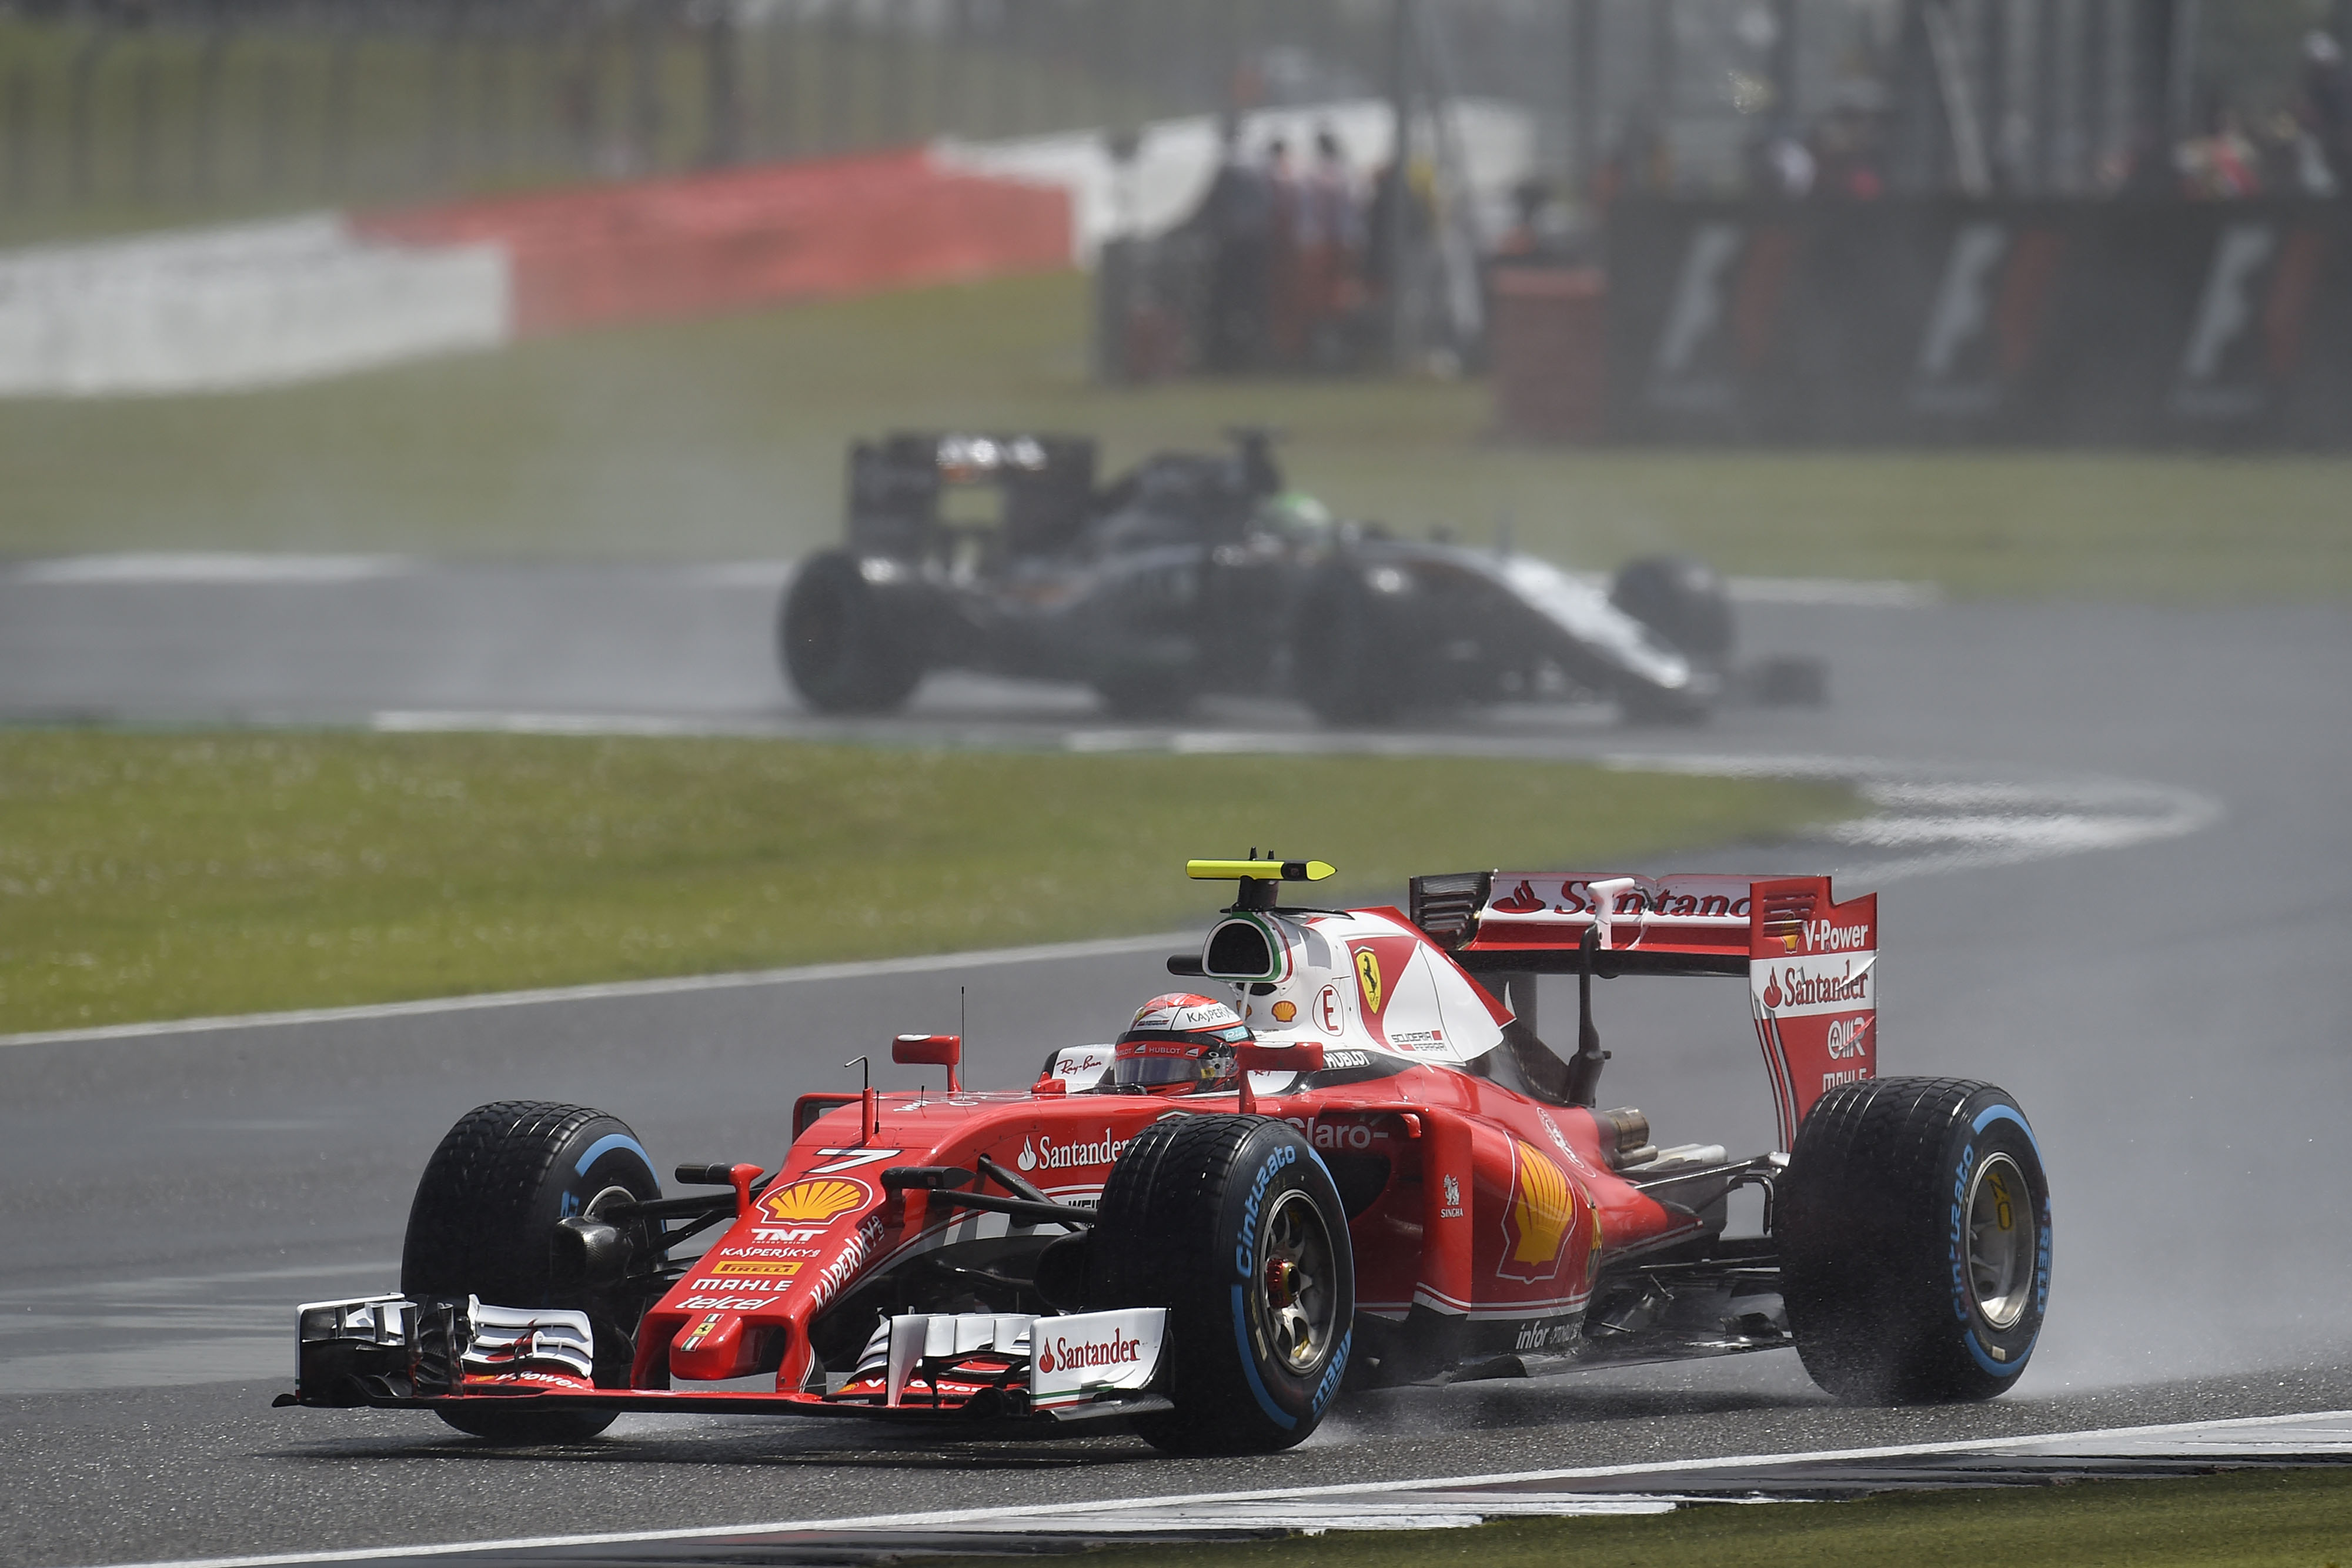 British Grand Prix – Silverstone Circuit 10 July - Menu dei Motori